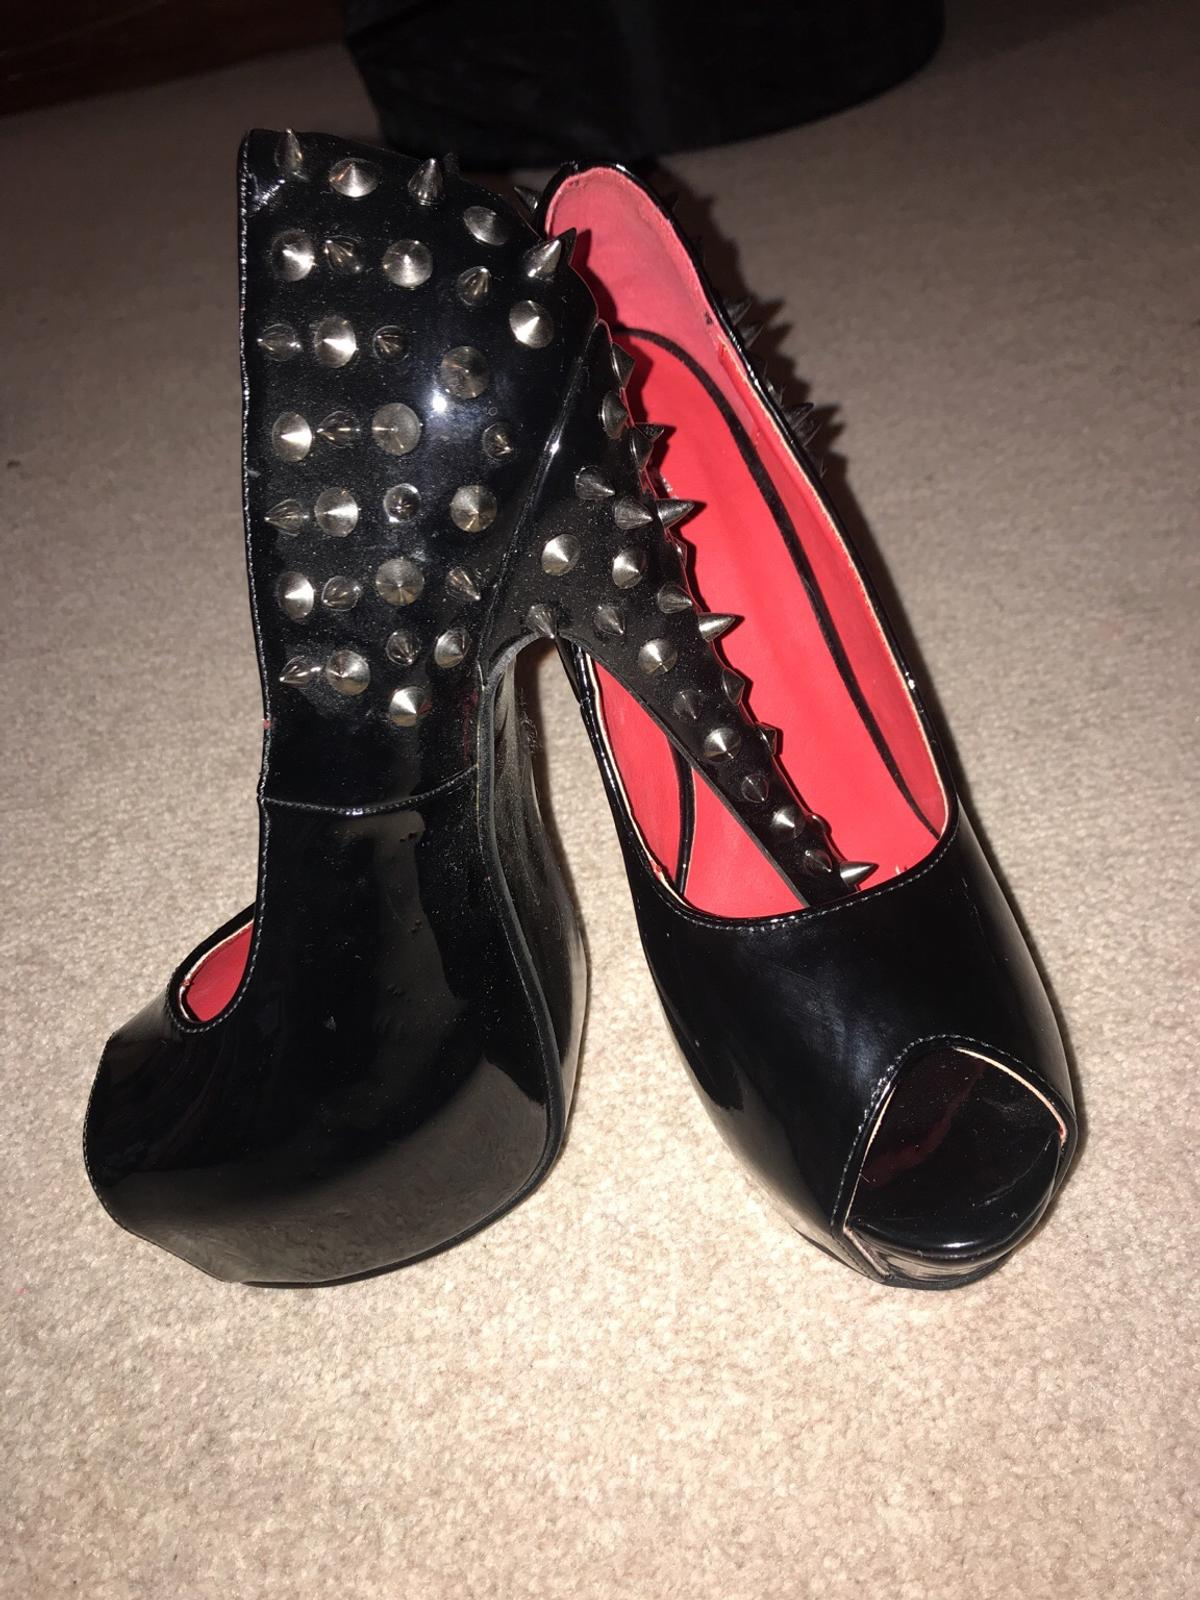 593587e97e5 Essex Glam Black Patent Leather Studded Heels in Darlington for ...